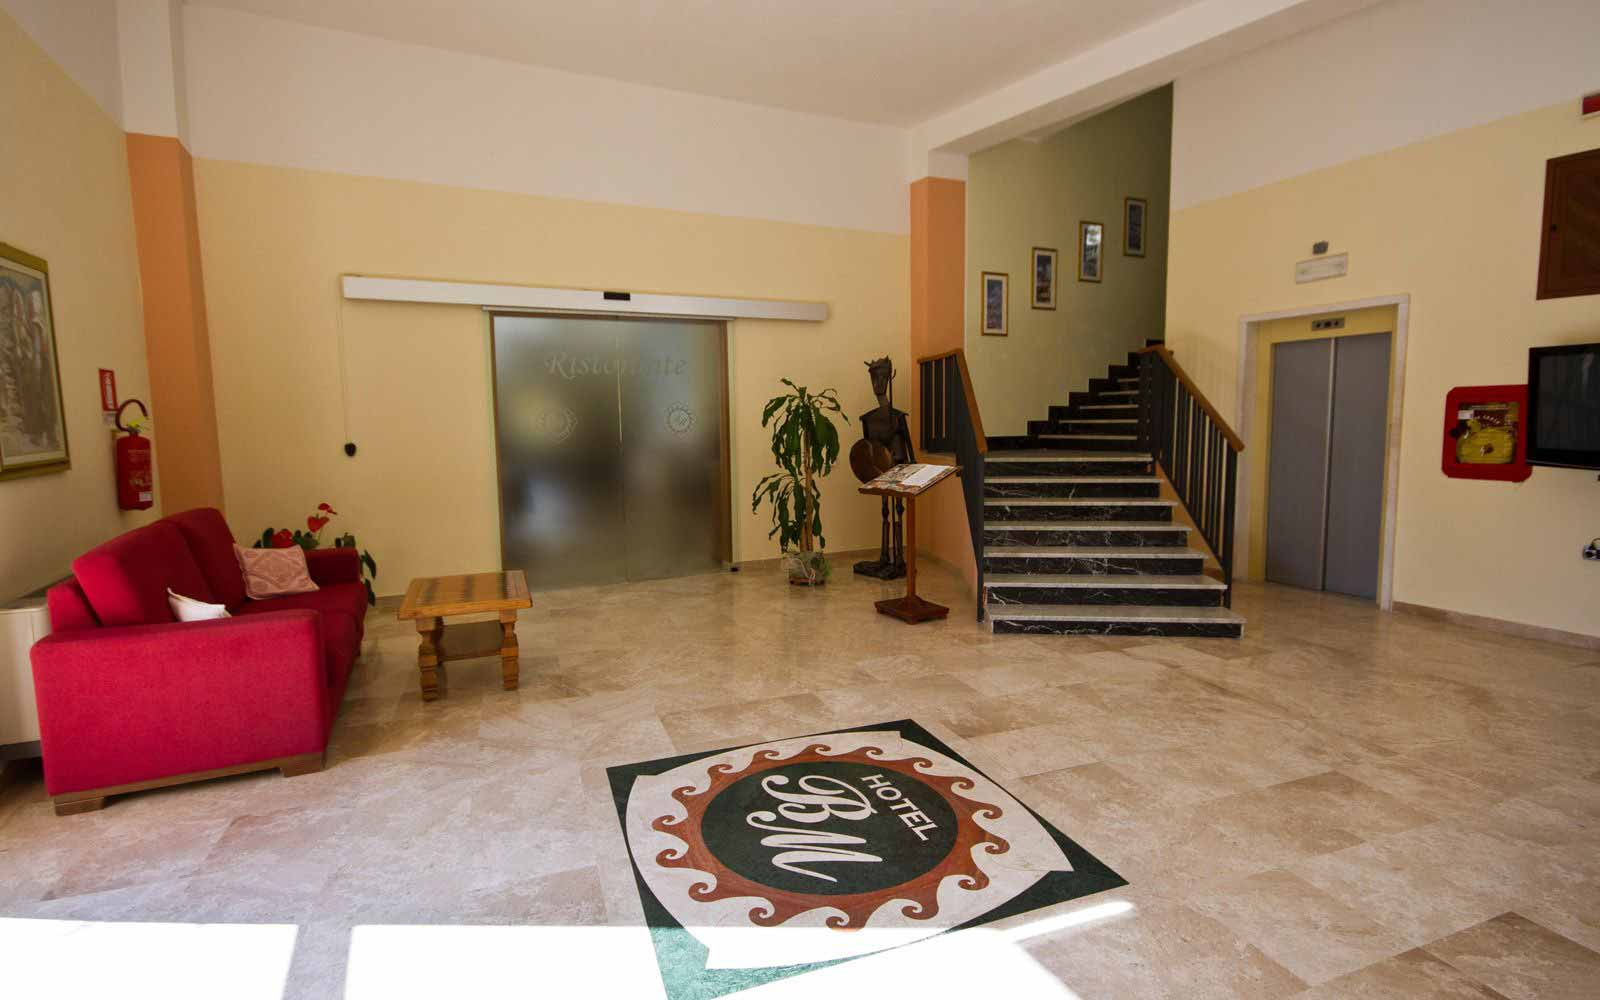 Entrance hall at Hotel Brancamaria